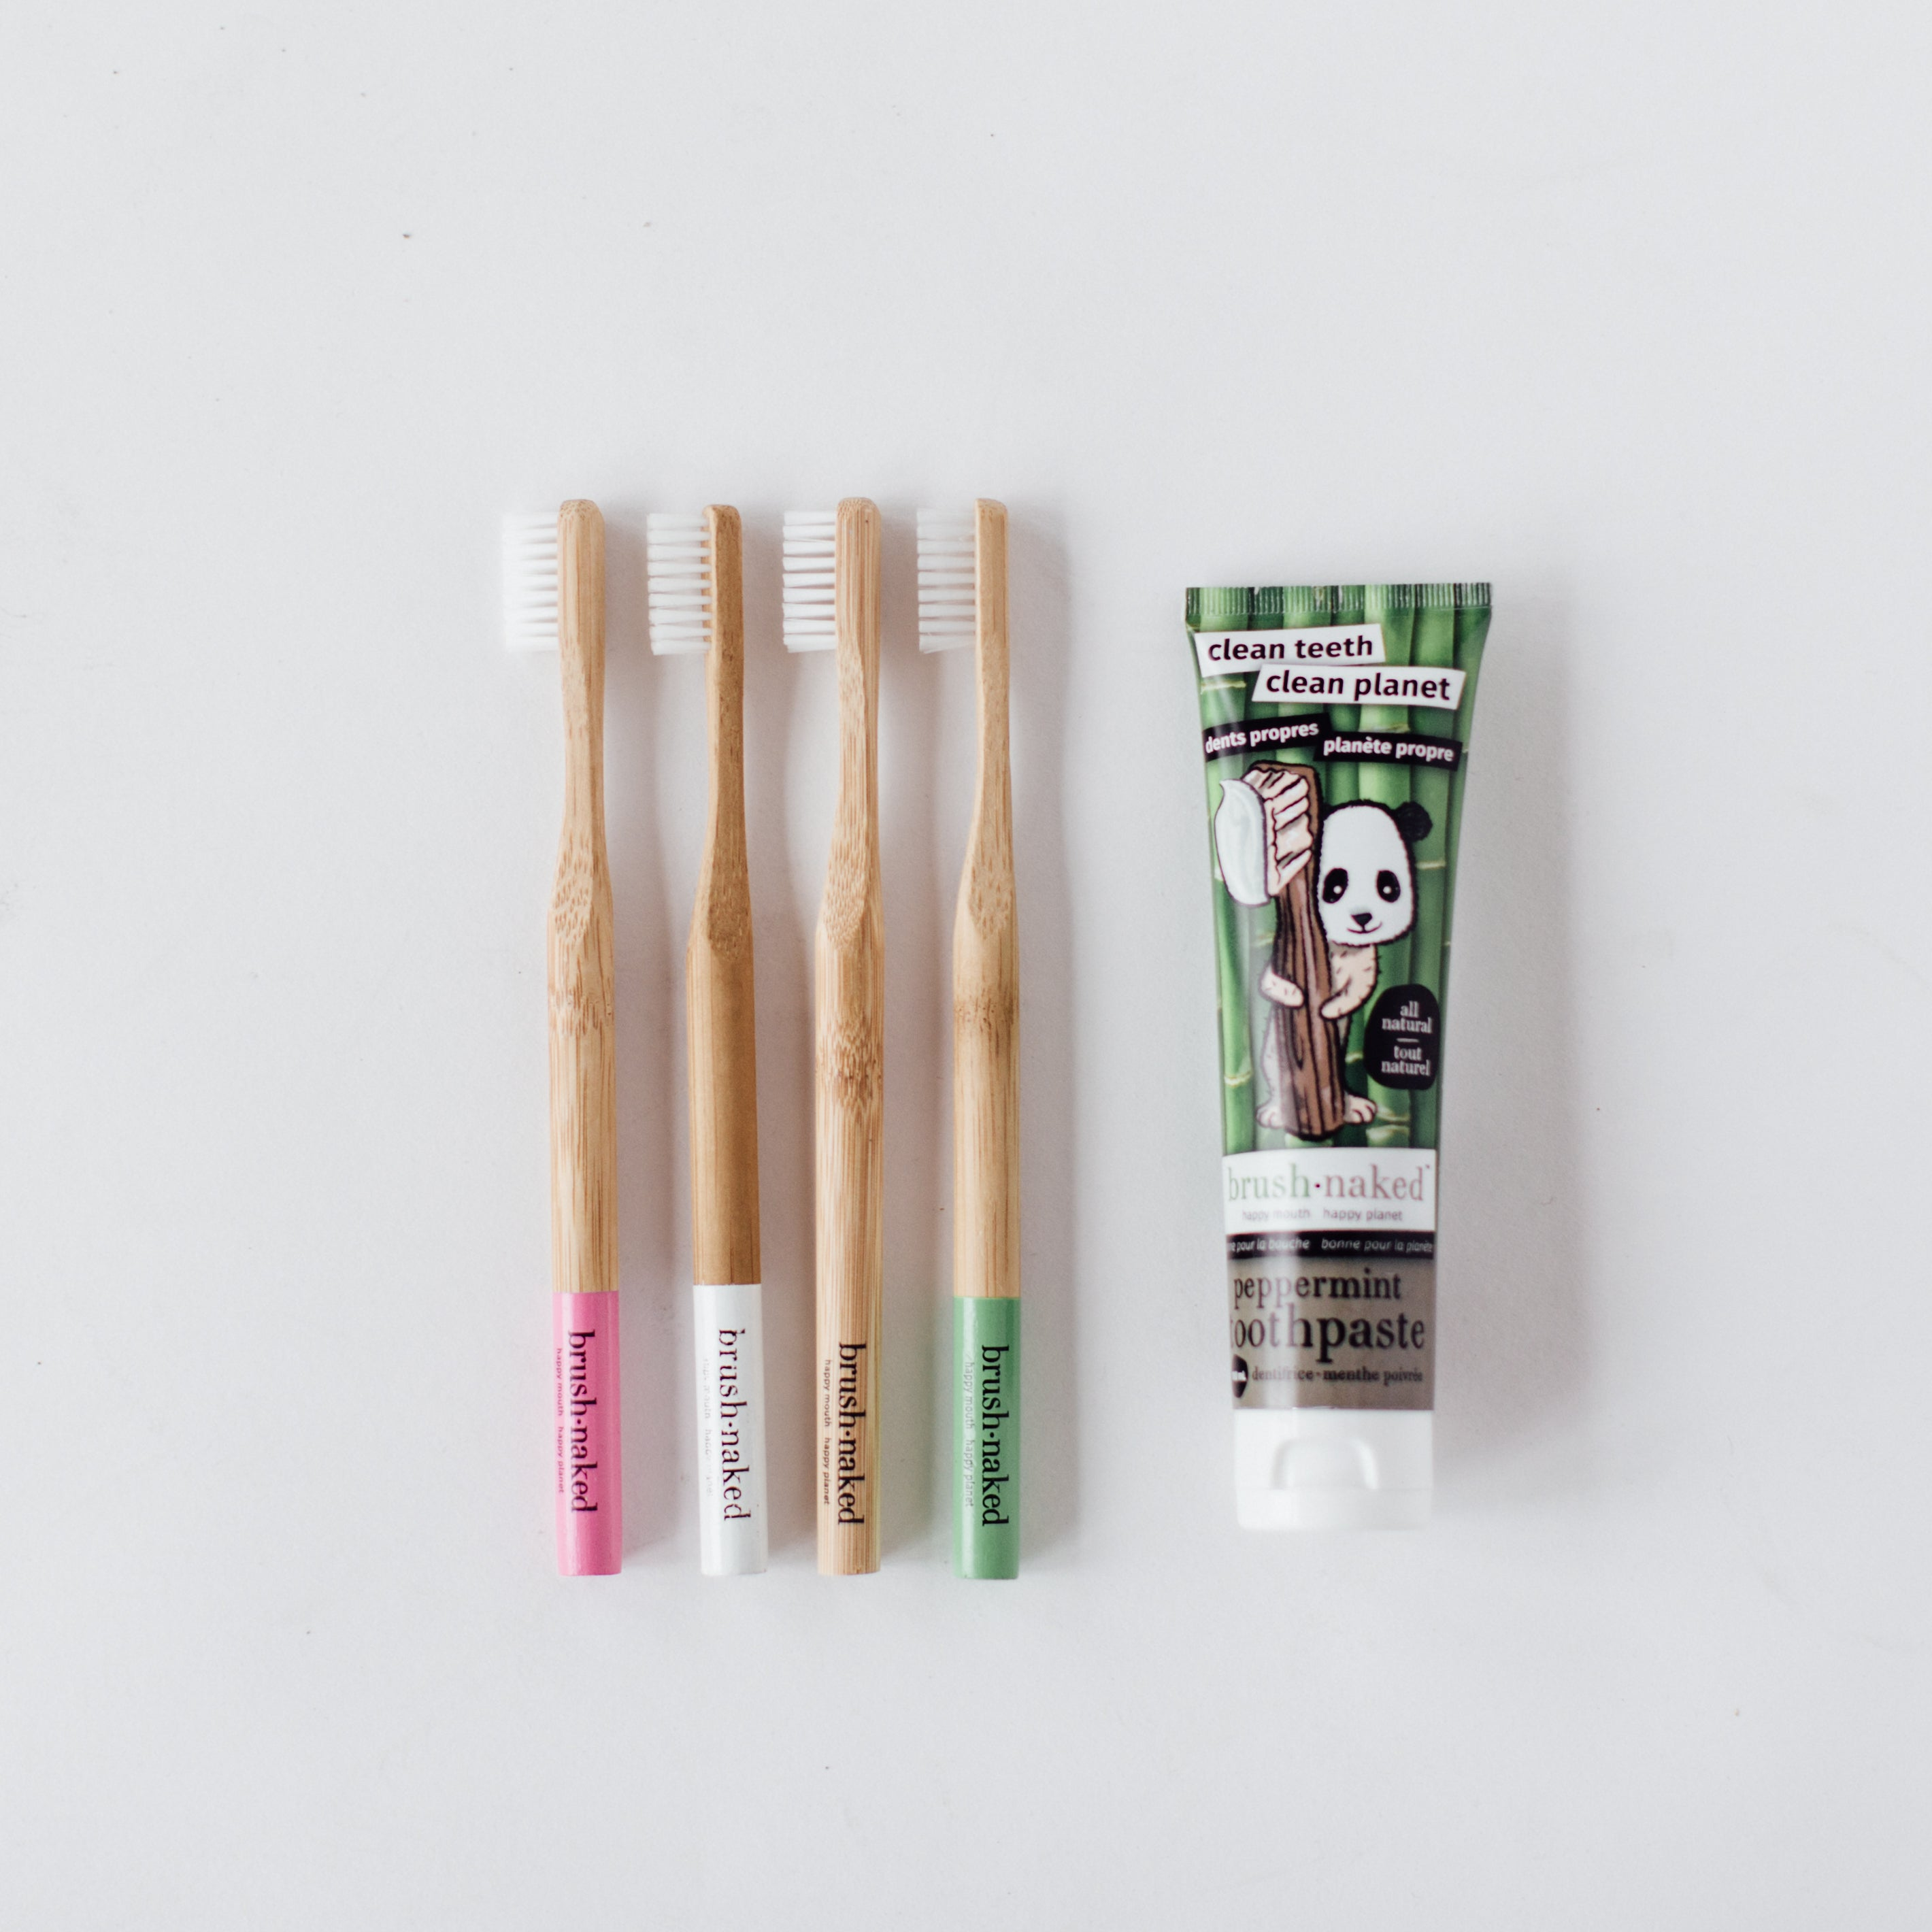 All Natural Toothpaste and a 4-Pack of Toothbrushes Combo Pack